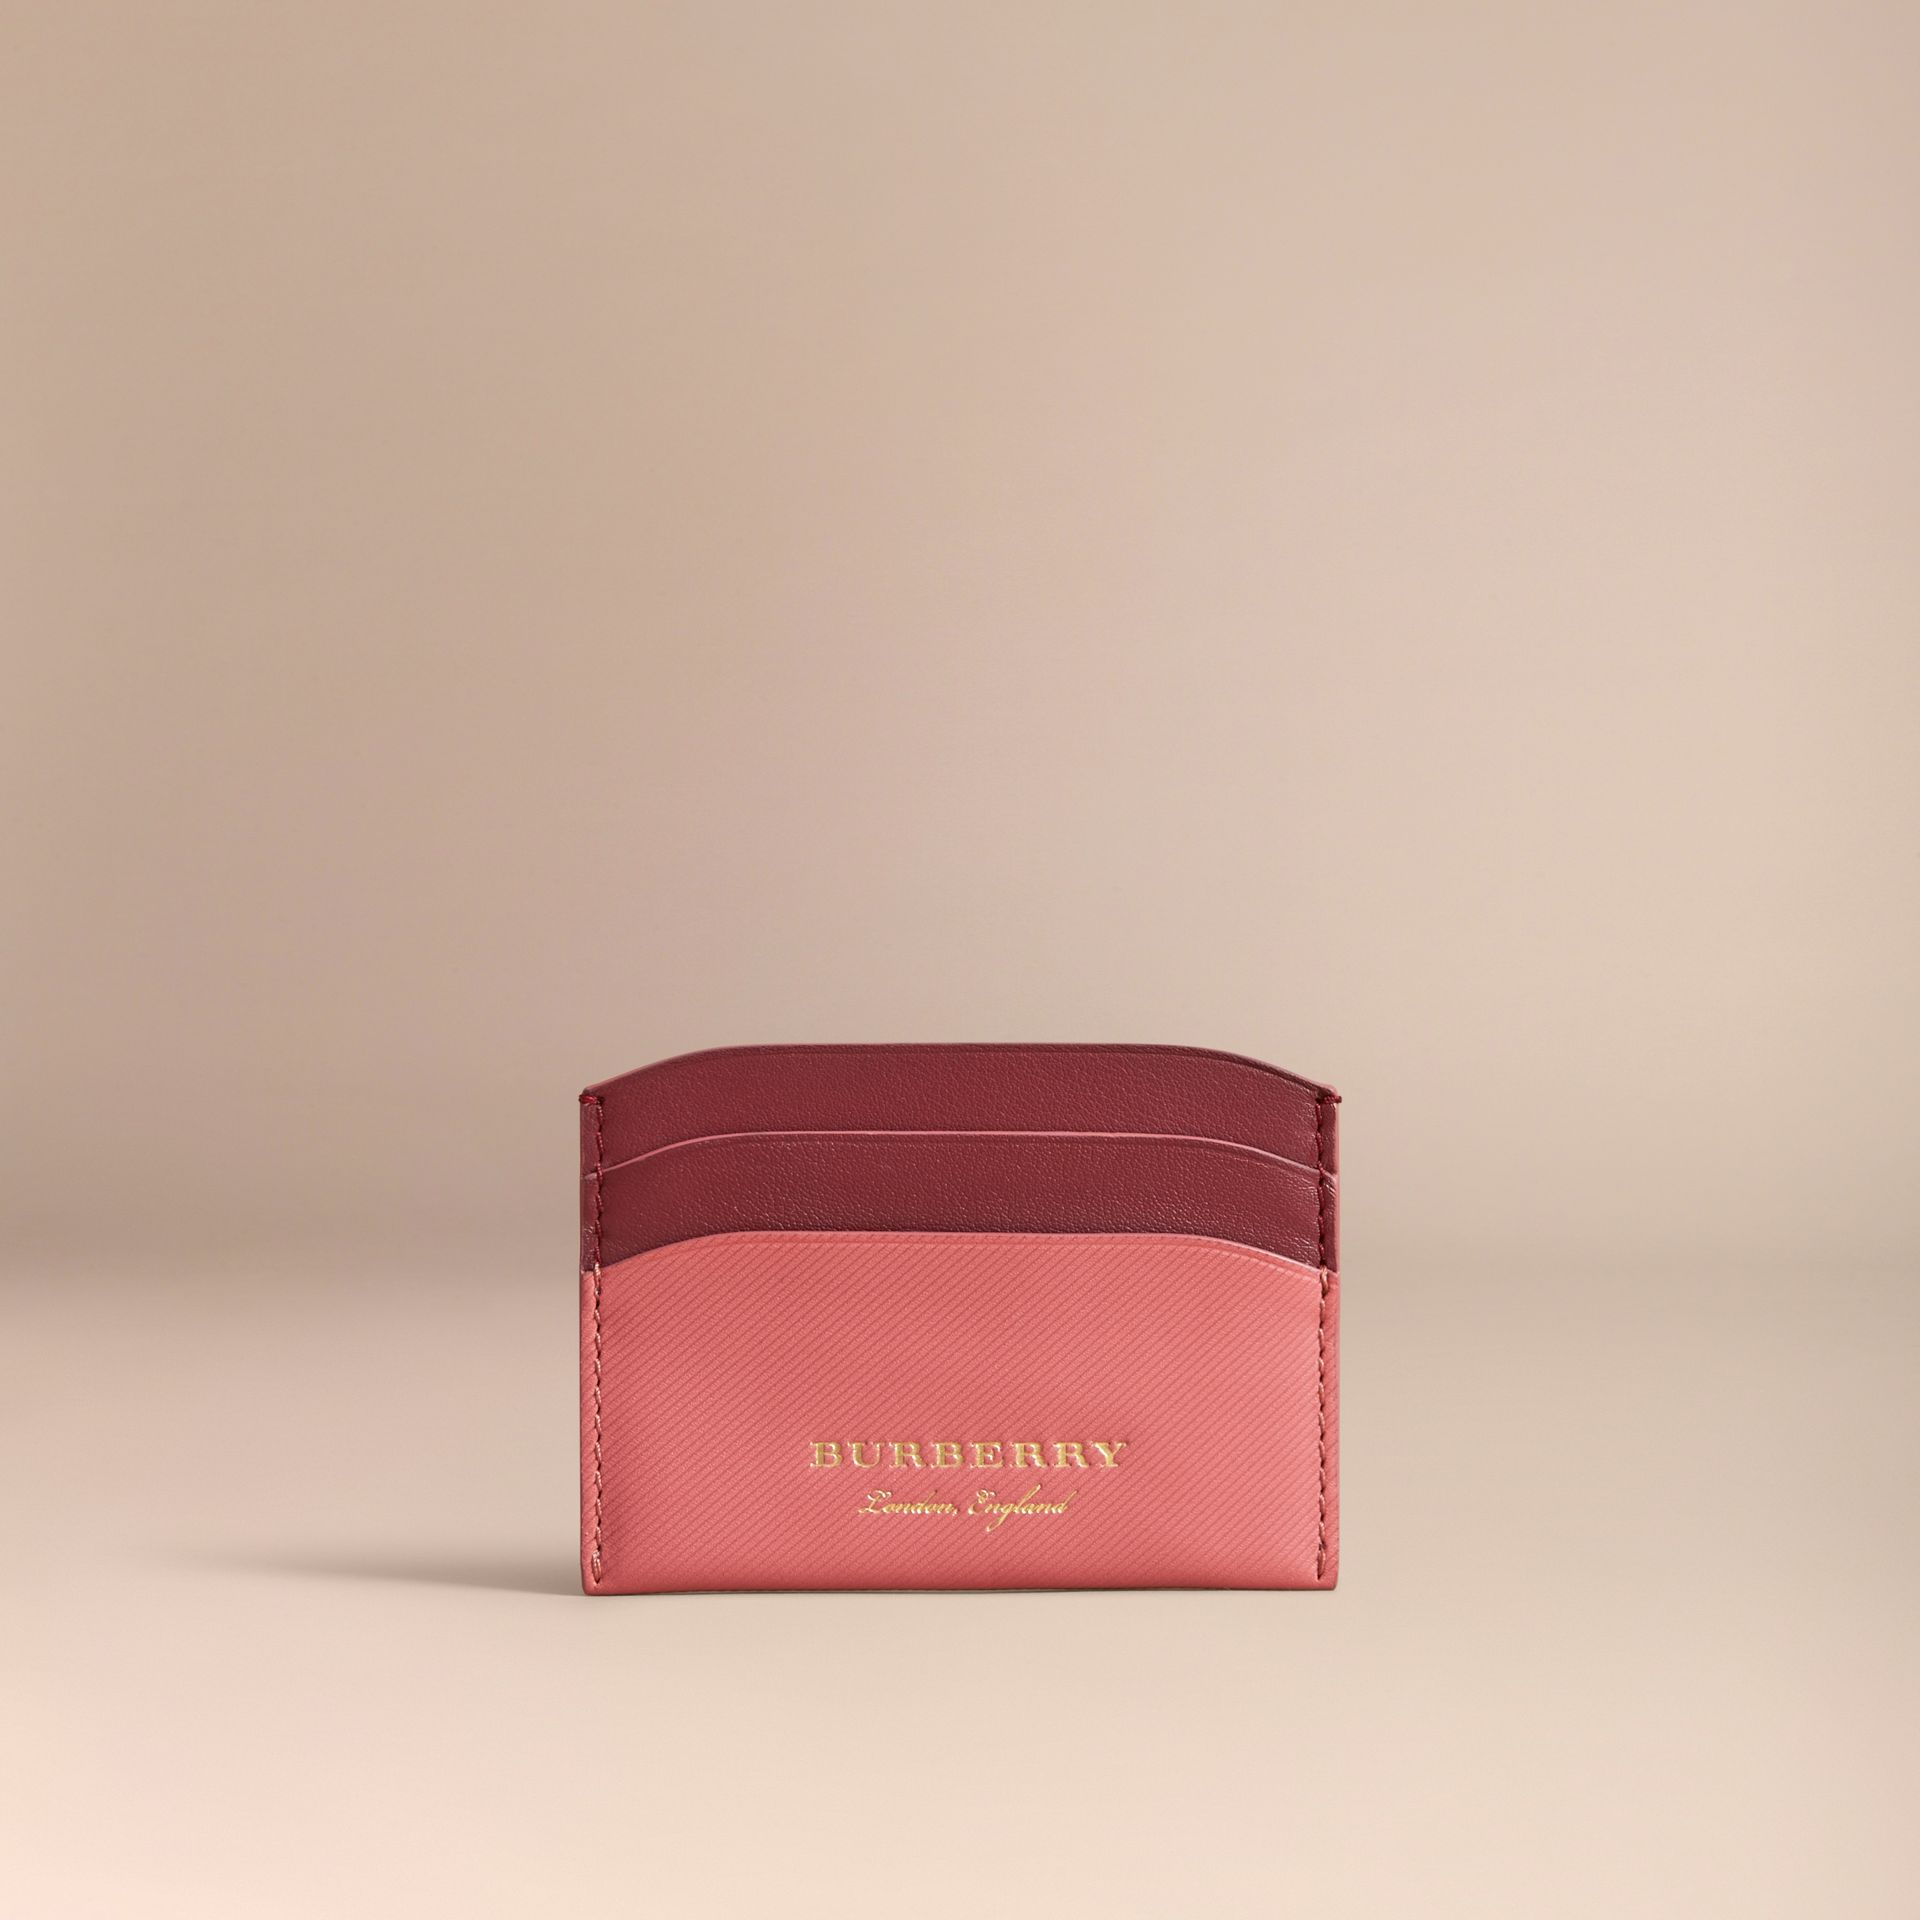 Two-tone Trench Leather Card Case in Blossom Pink/ Antique Red - Women | Burberry Singapore - gallery image 5